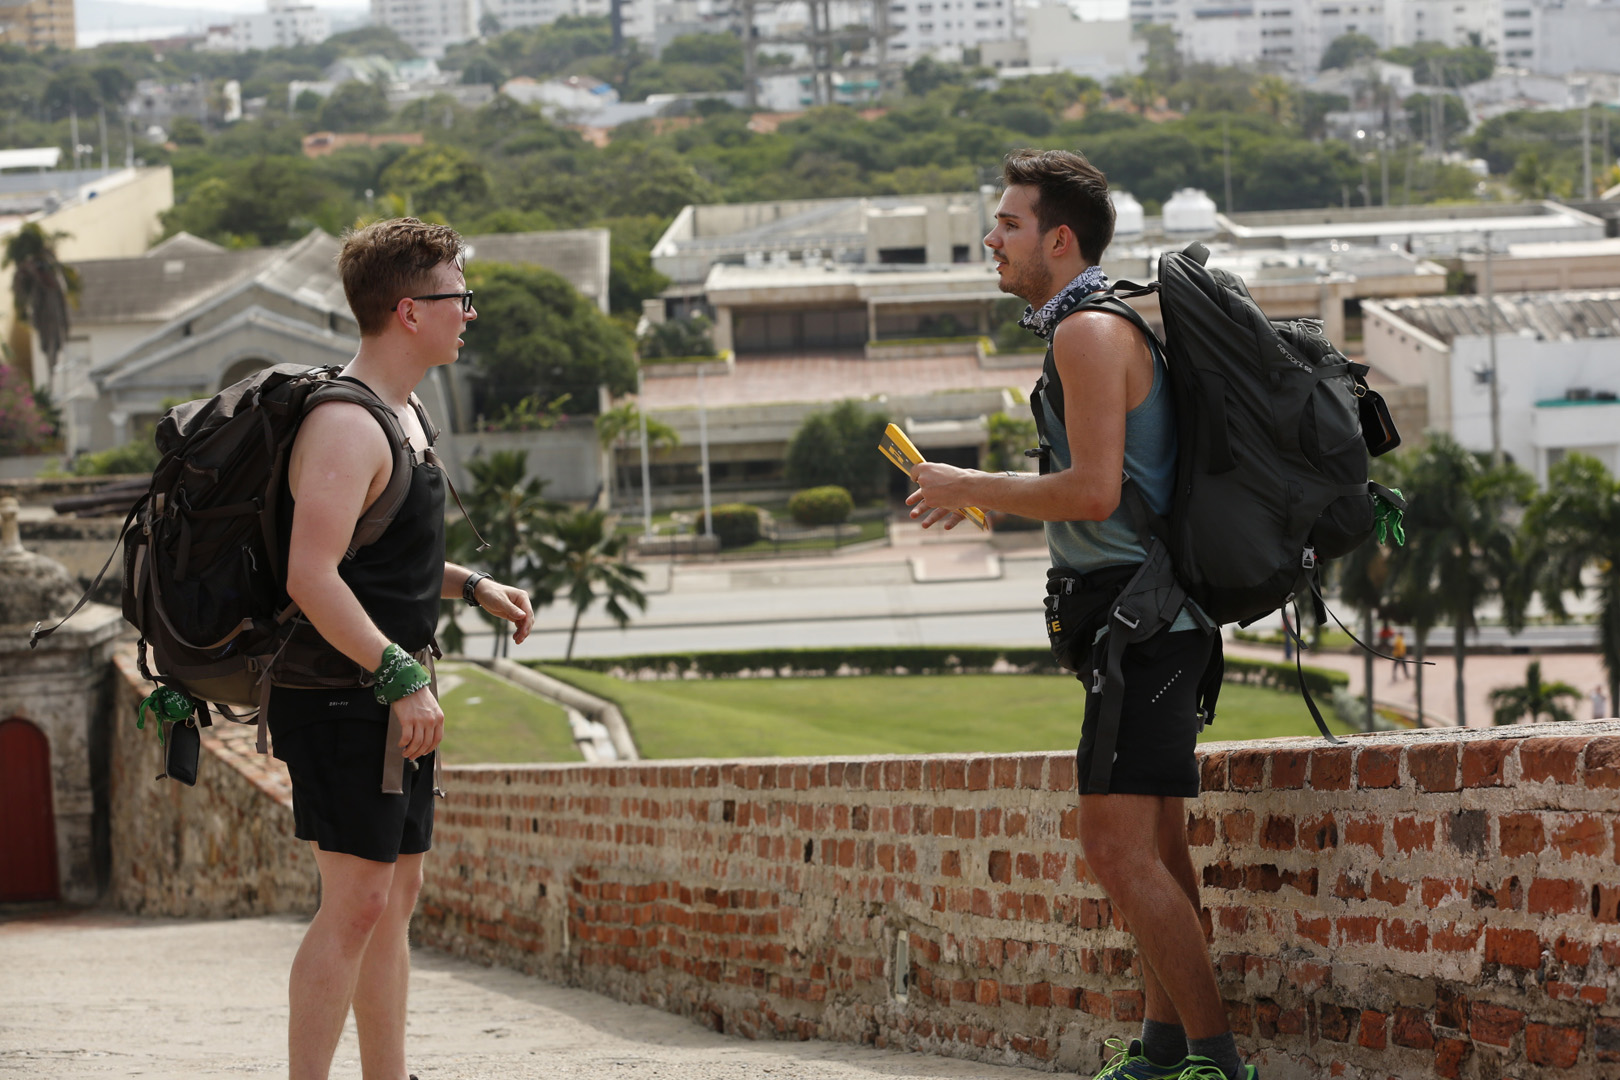 Tyler and Korey get familiar with their surroundings after arriving in Cartagena.